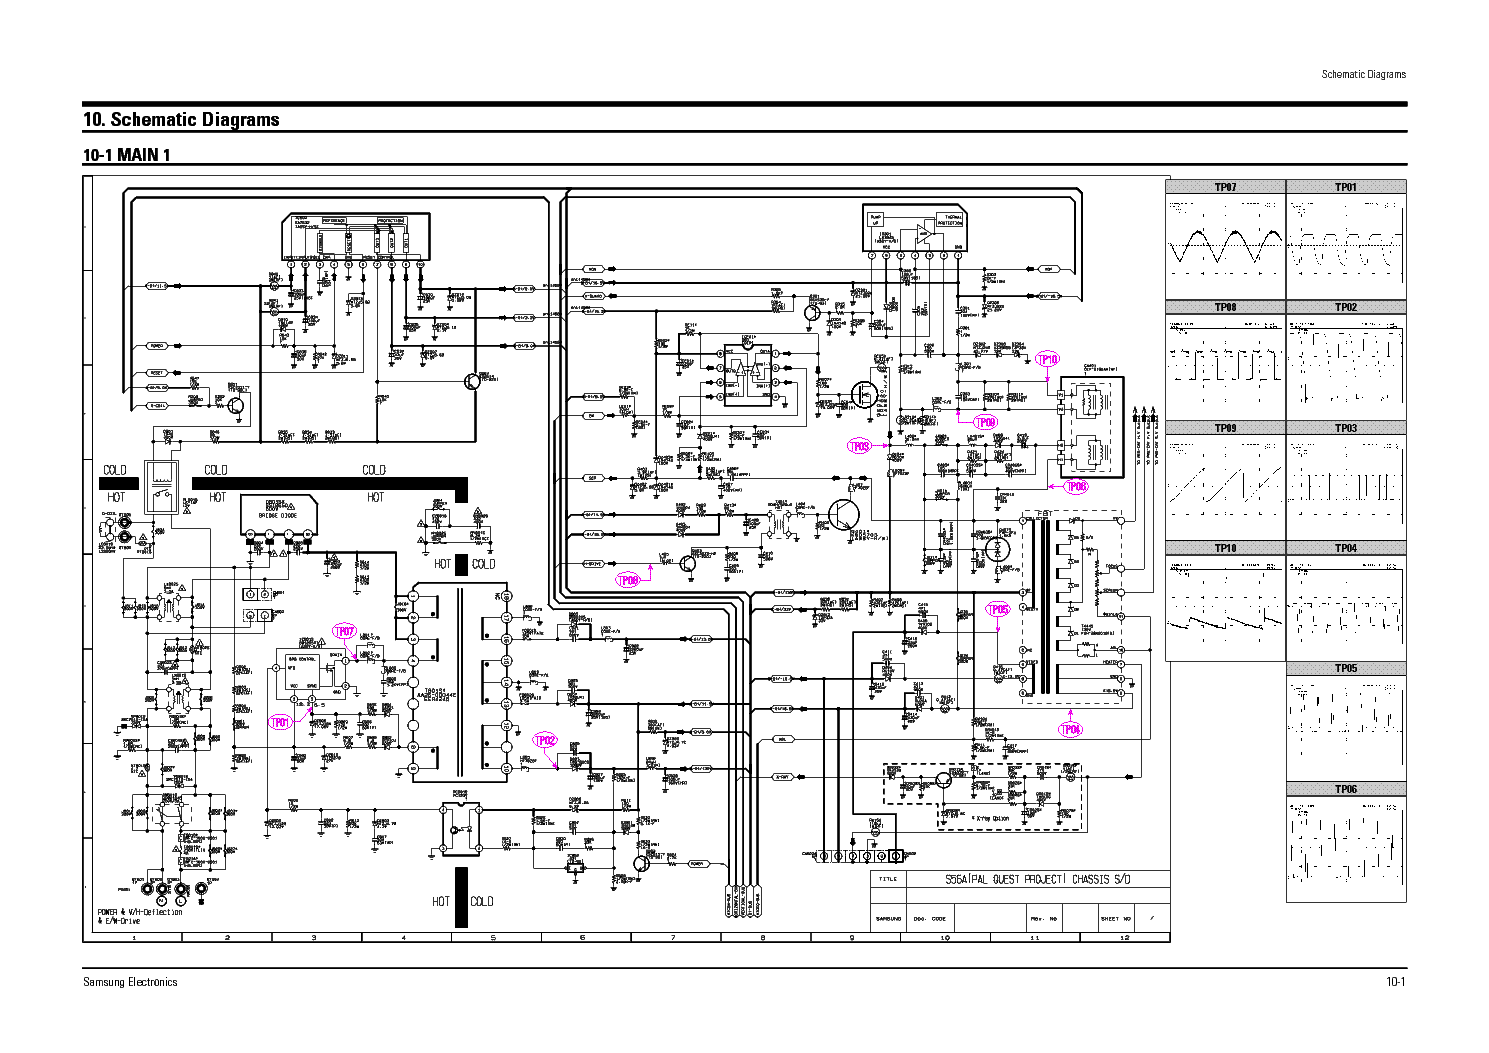 Sony Tv Schematics Trusted Wiring Diagram T V Circuit Free Download Diy Enthusiasts Diagrams U2022 Washing Machine Schematic